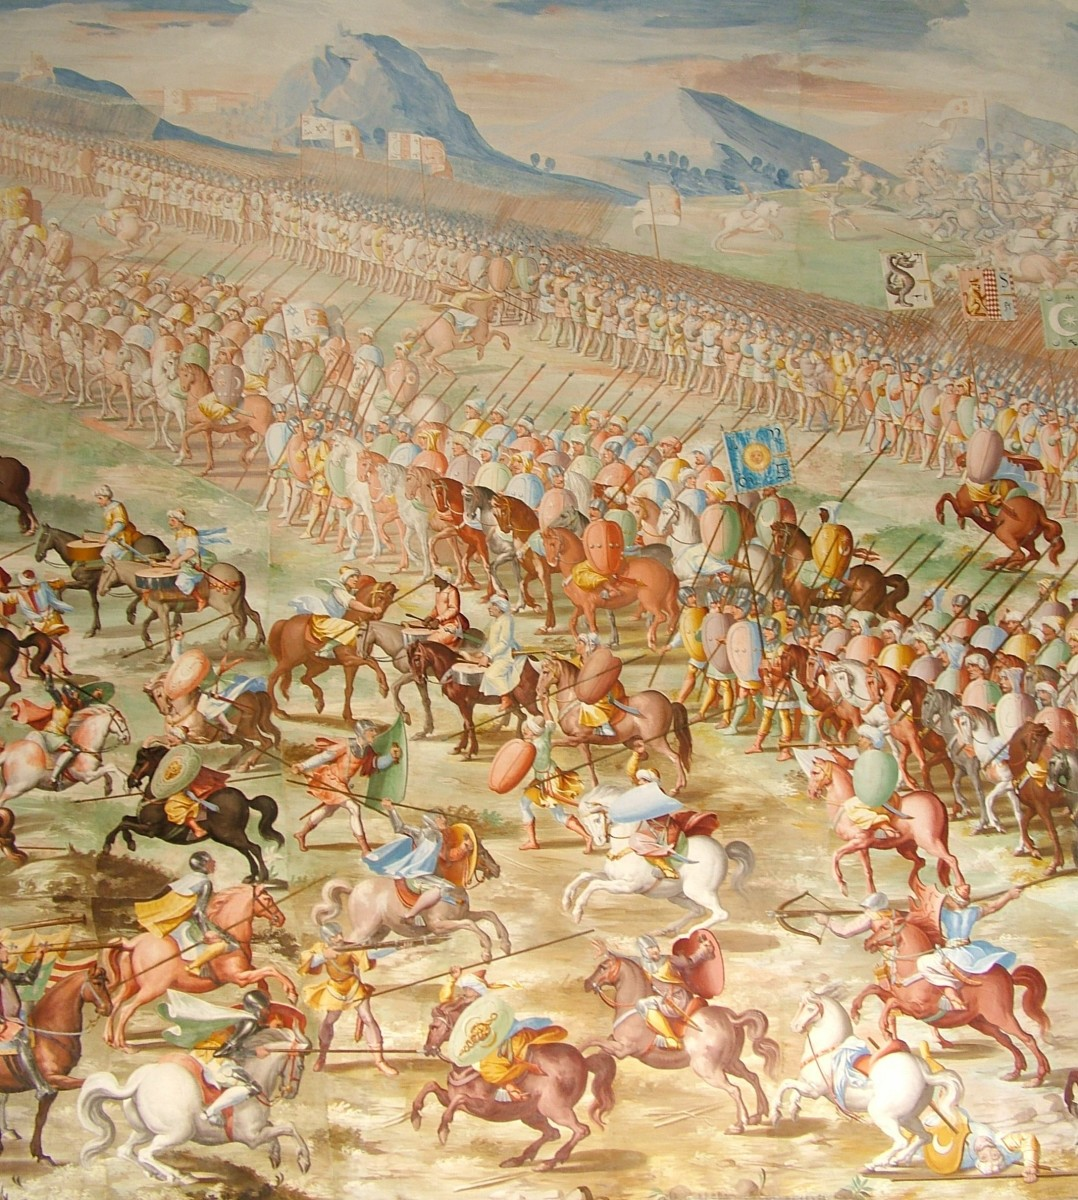 Battle of La Higueruela, 1431. Note the differences in tail carriage of the various horses in the painting. The Arabian's high-carried tail is a distinctive trait.